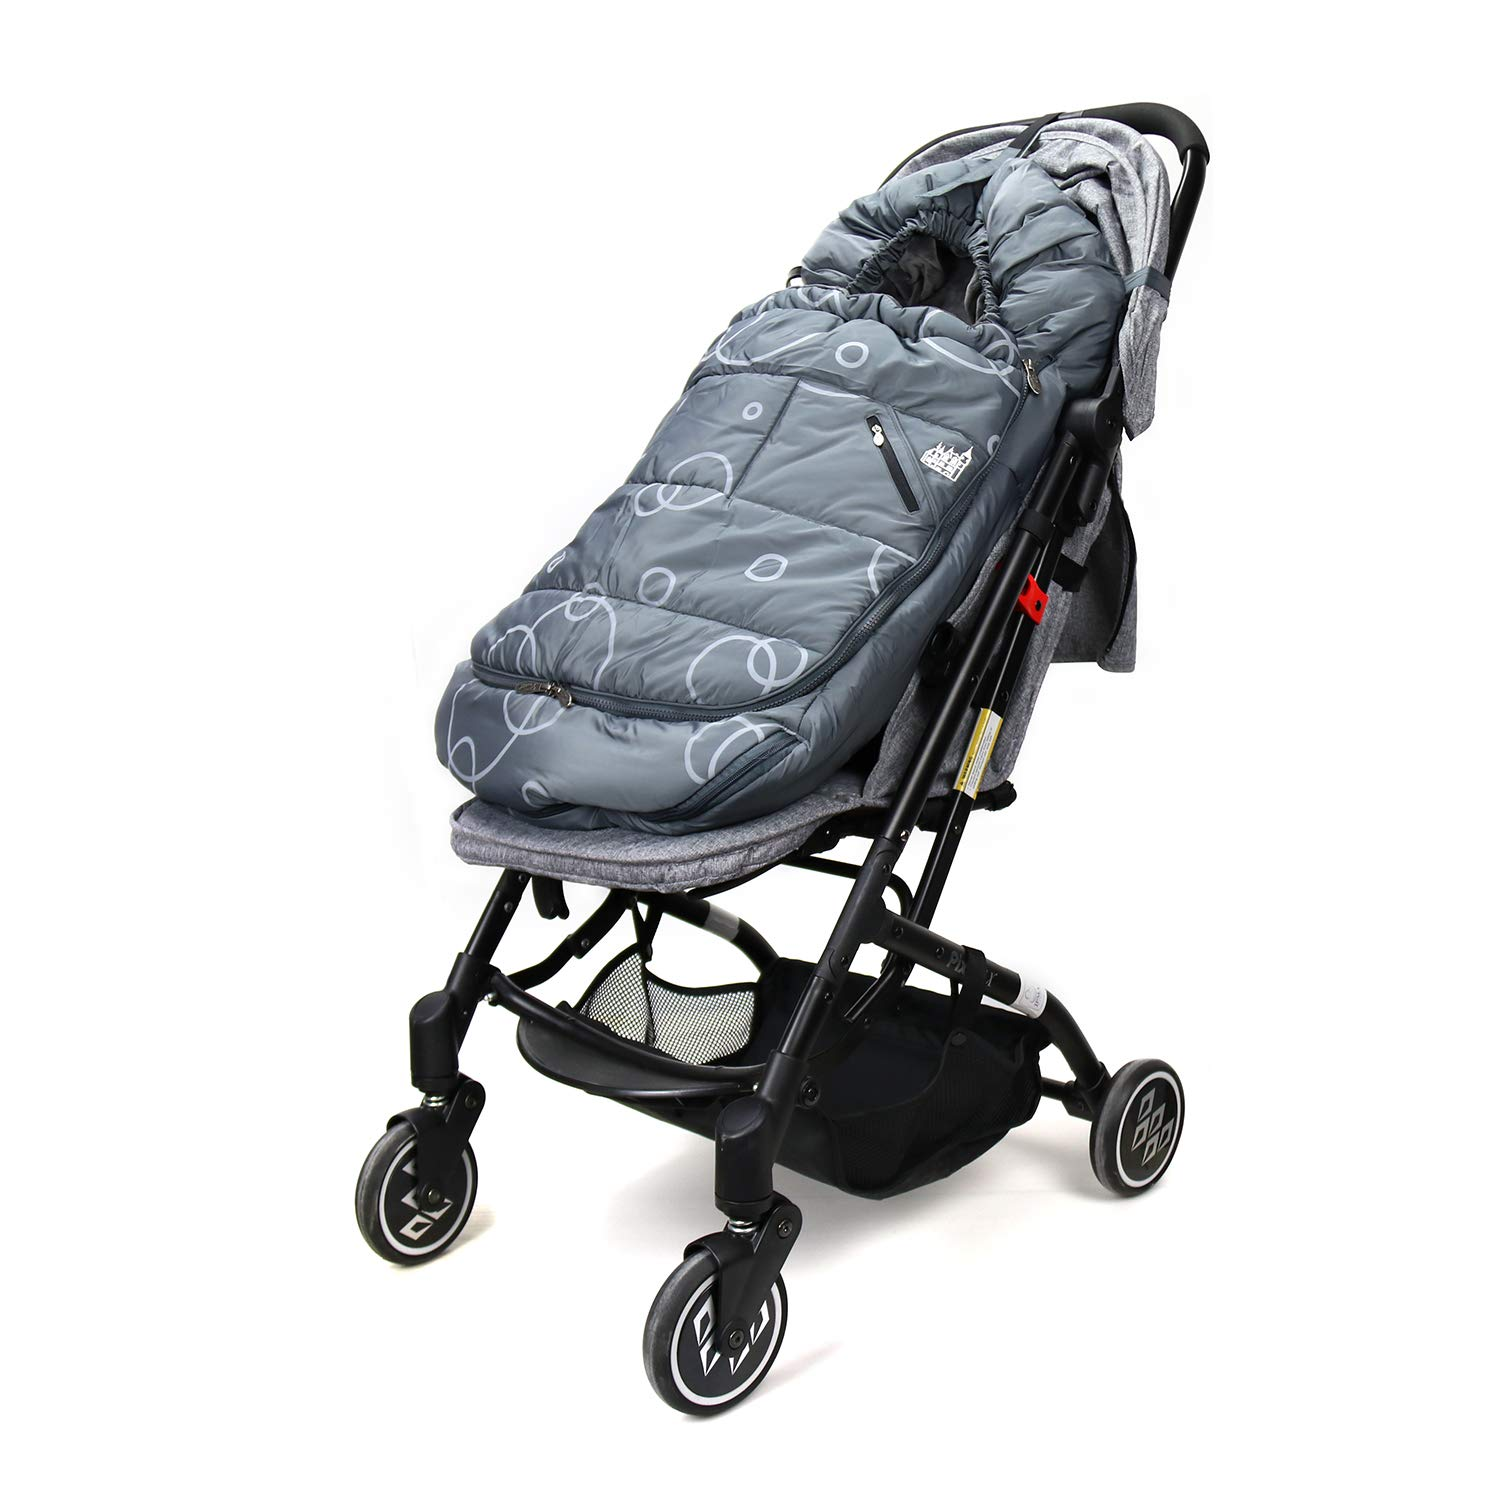 Wonder buggy Winter Outdoor Tour Waterproof Baby Infant Stroller Sleeping Bag Warm Footmuff Sack with Plush Interior (Gray) by Wonder buggy (Image #6)